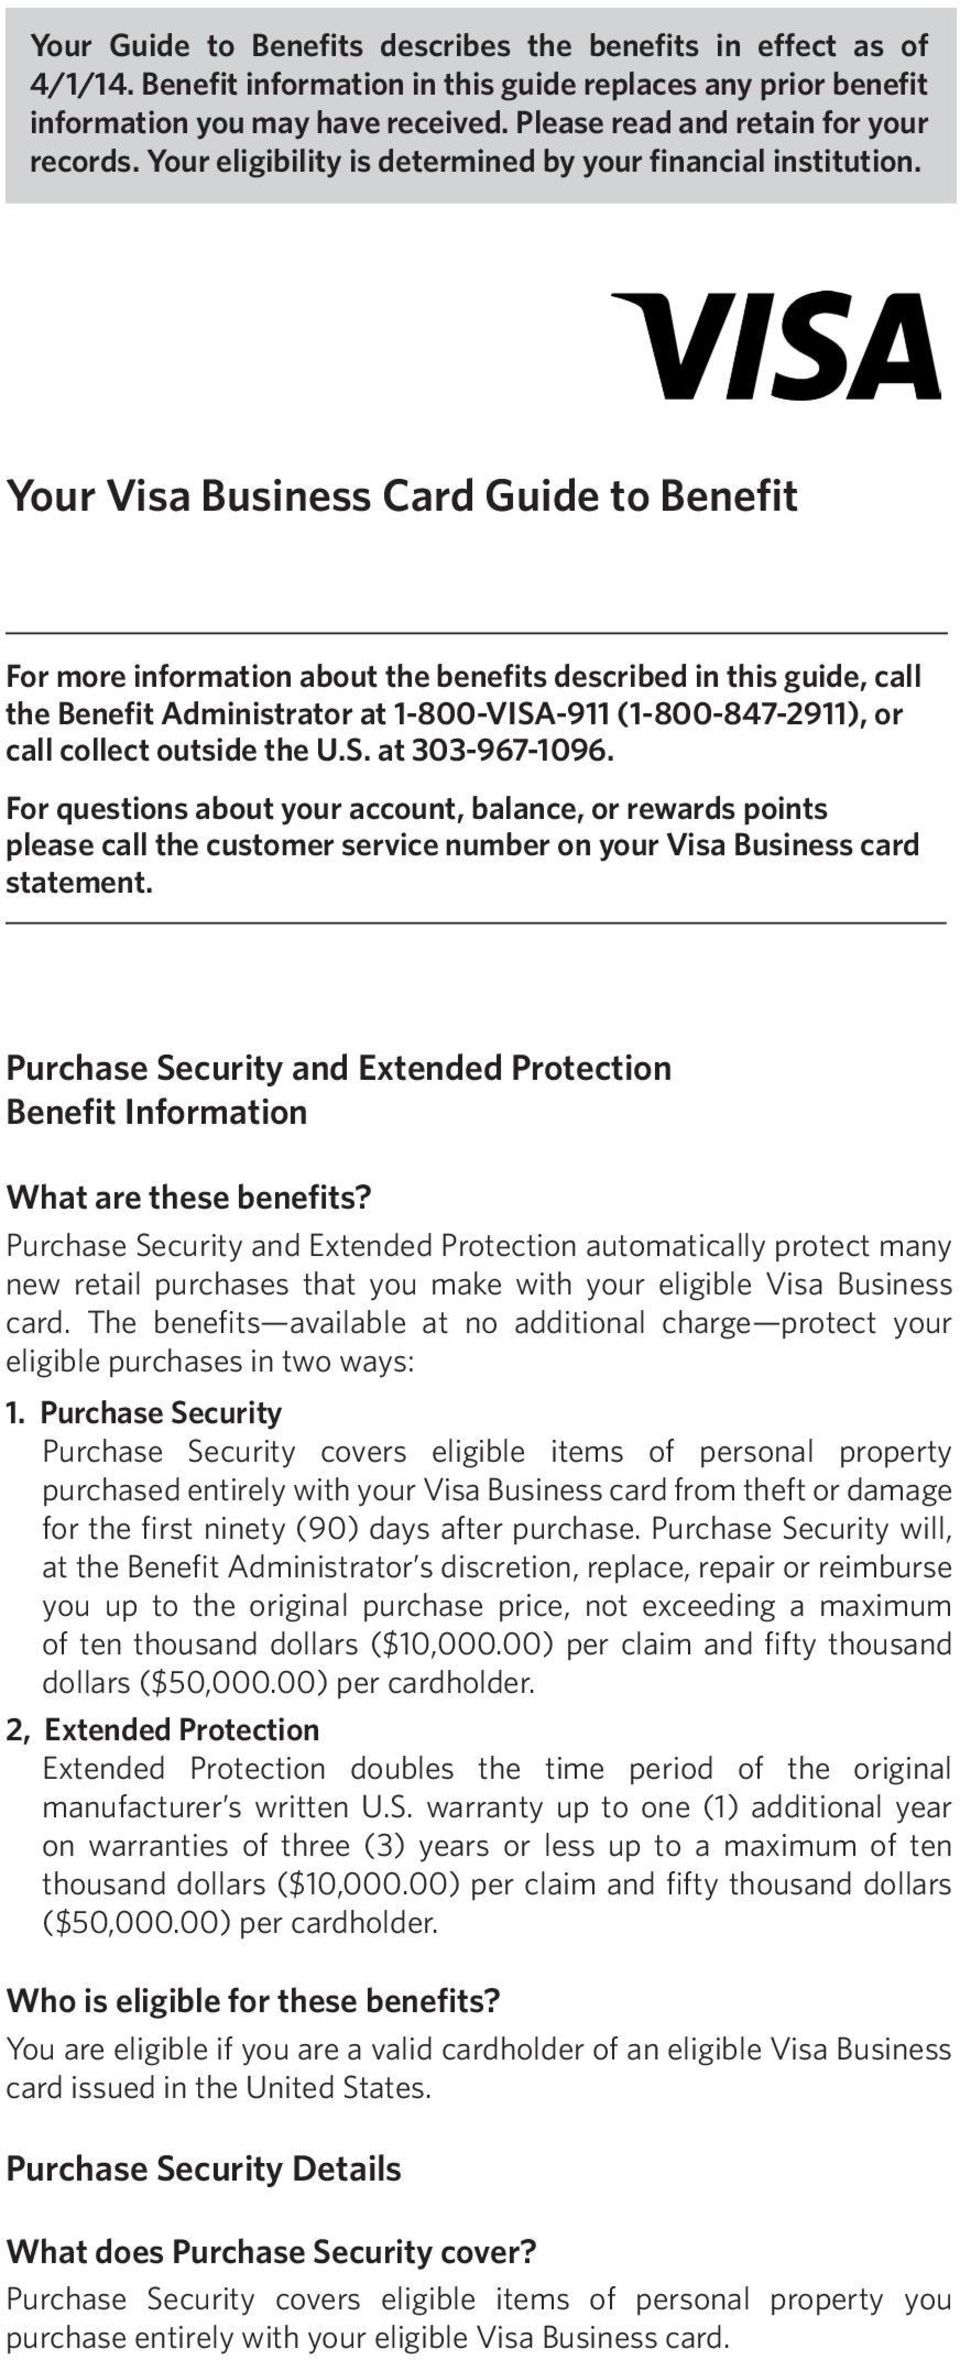 Your Visa Business Card Guide to Benefit For more information about the benefits described in this guide, call the Benefit Administrator at 1-800-VISA-911 (1-800-847-2911), or call collect outside